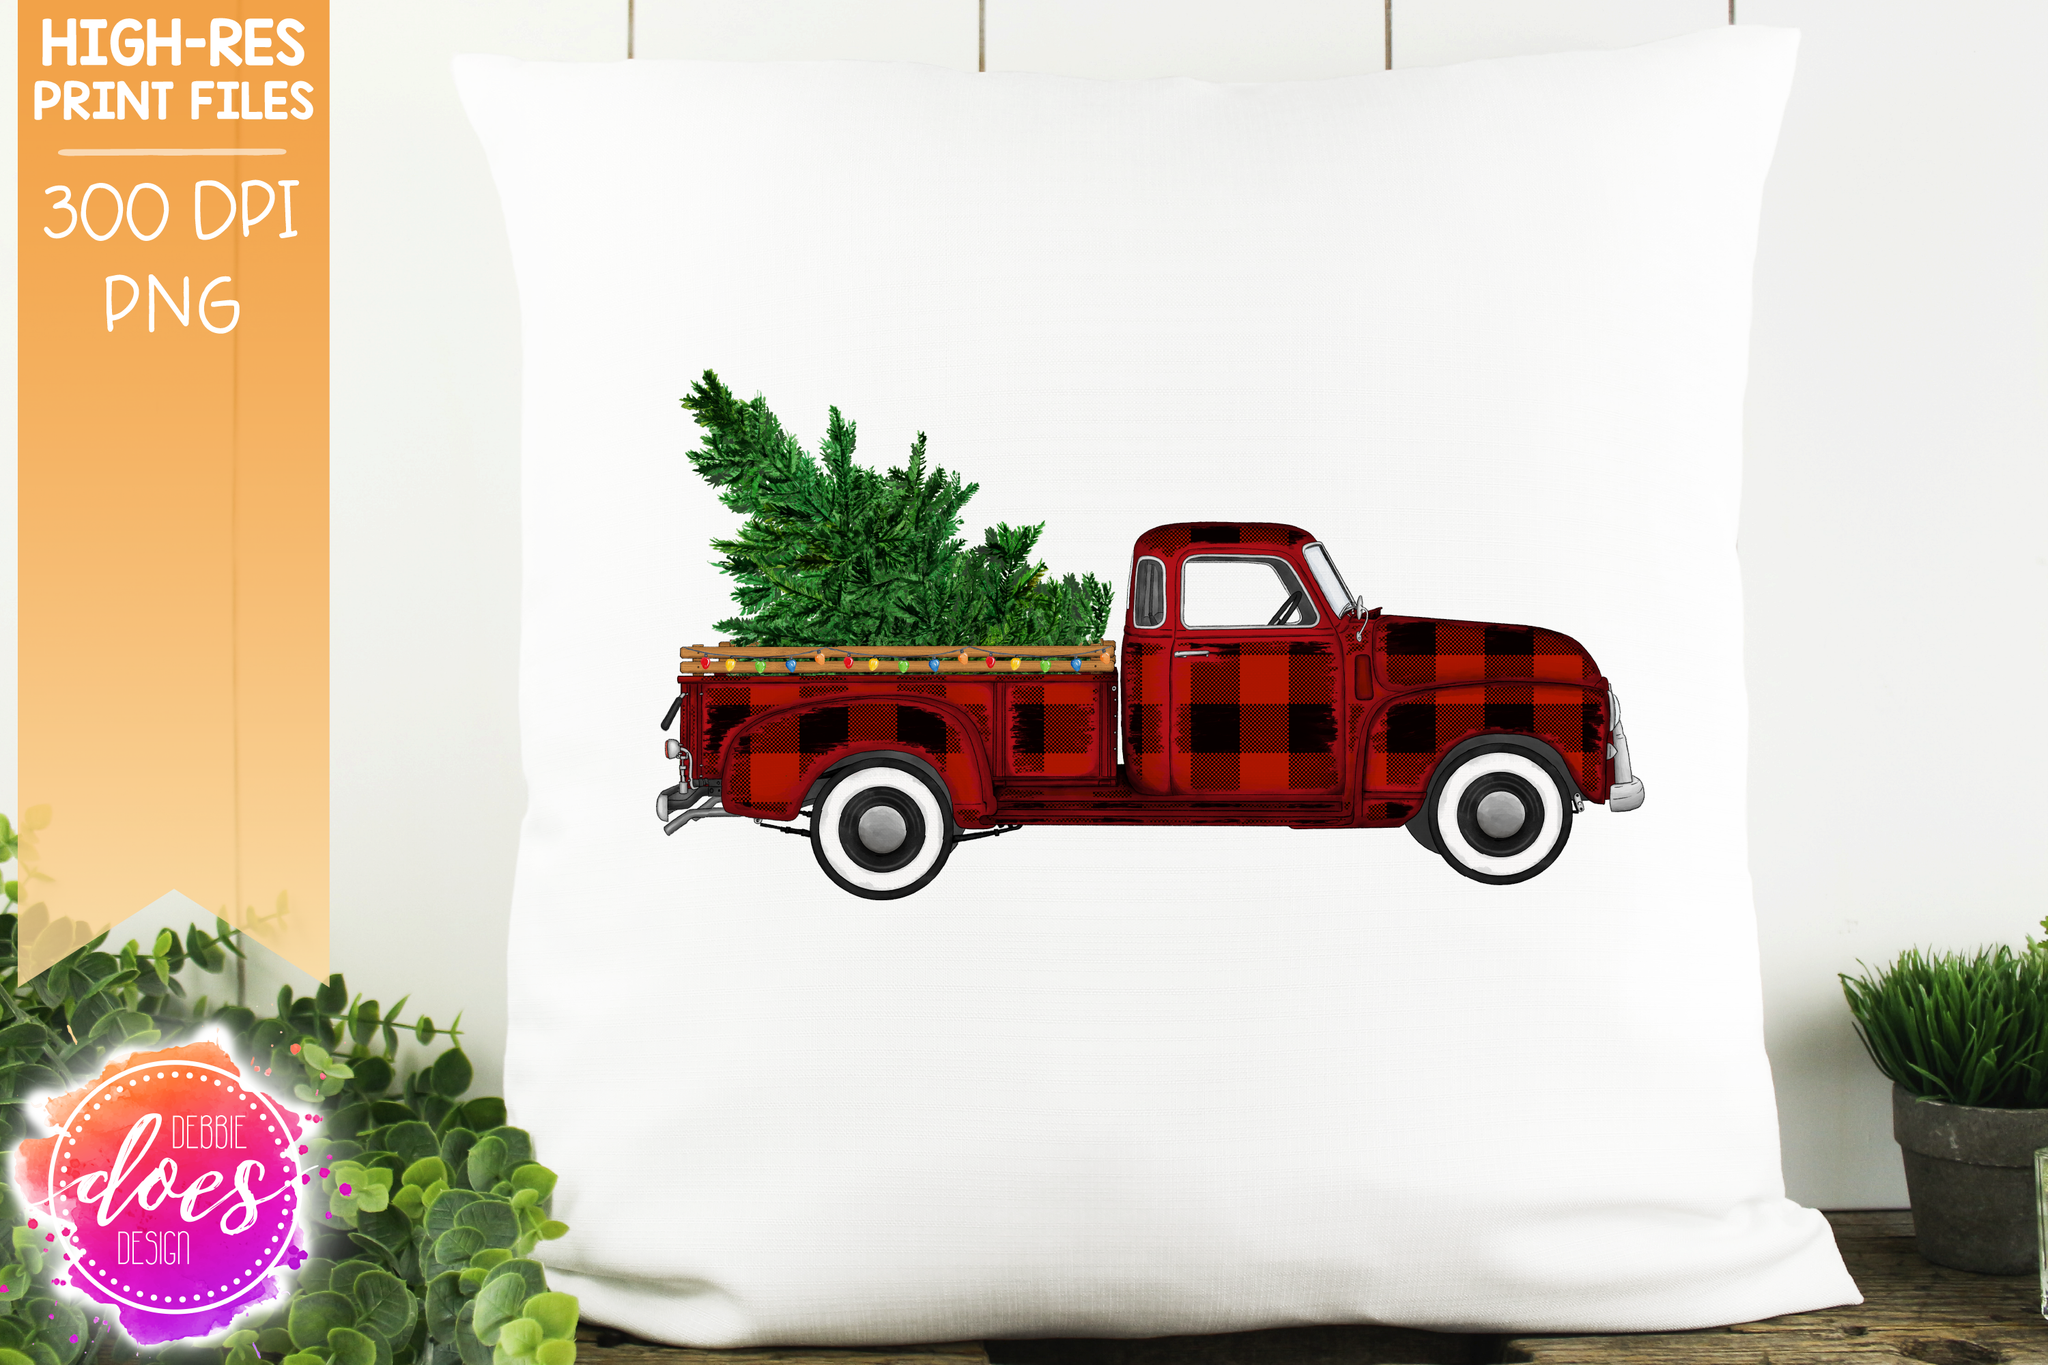 Christmas Tree and Lights Truck - Red Plaid - Sublimation/Printable Design